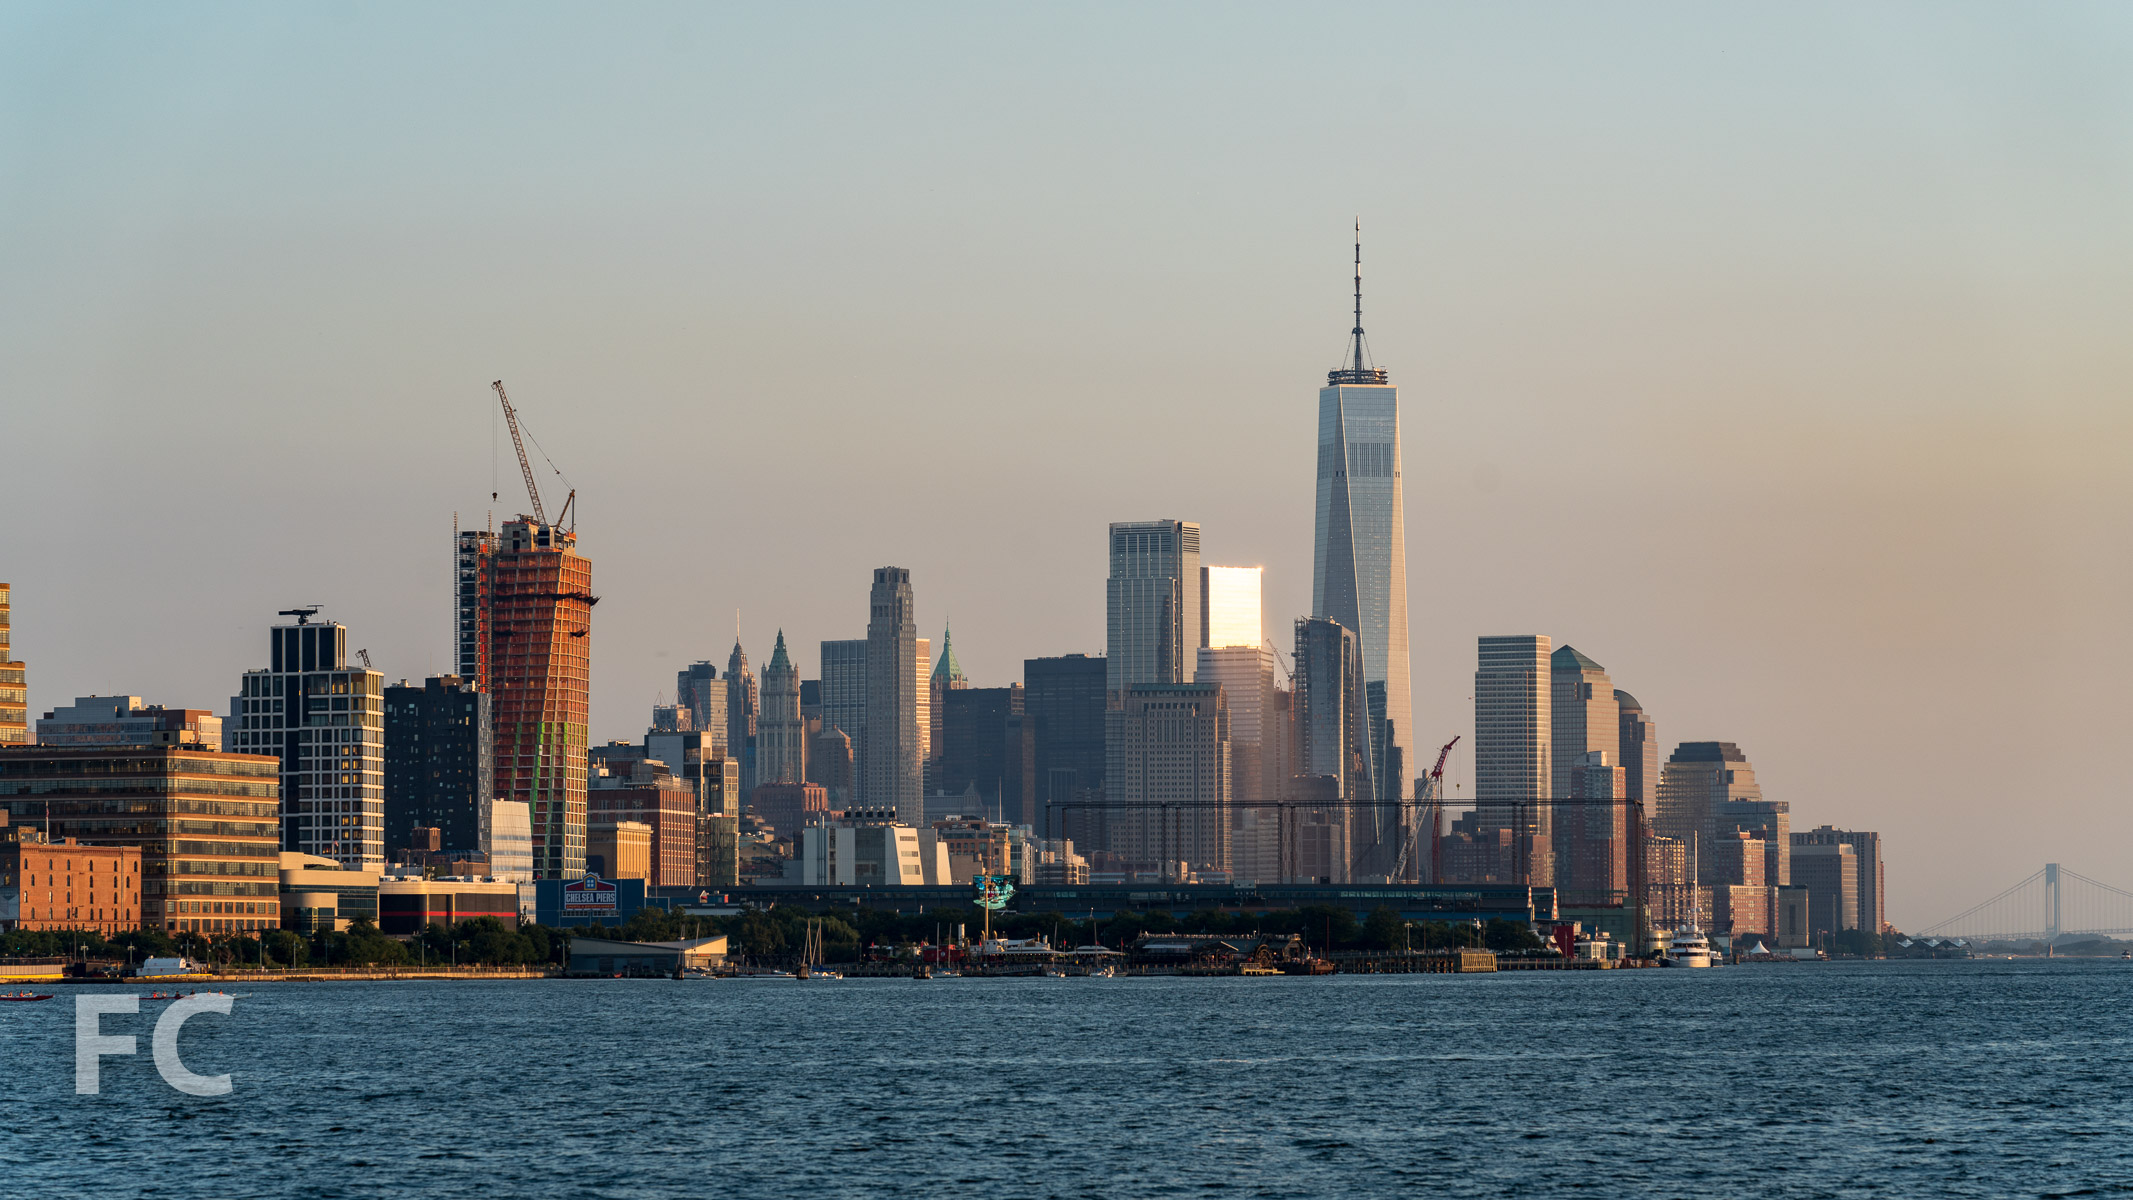 Looking south towards the west tower (left) and Lower Manhattan.